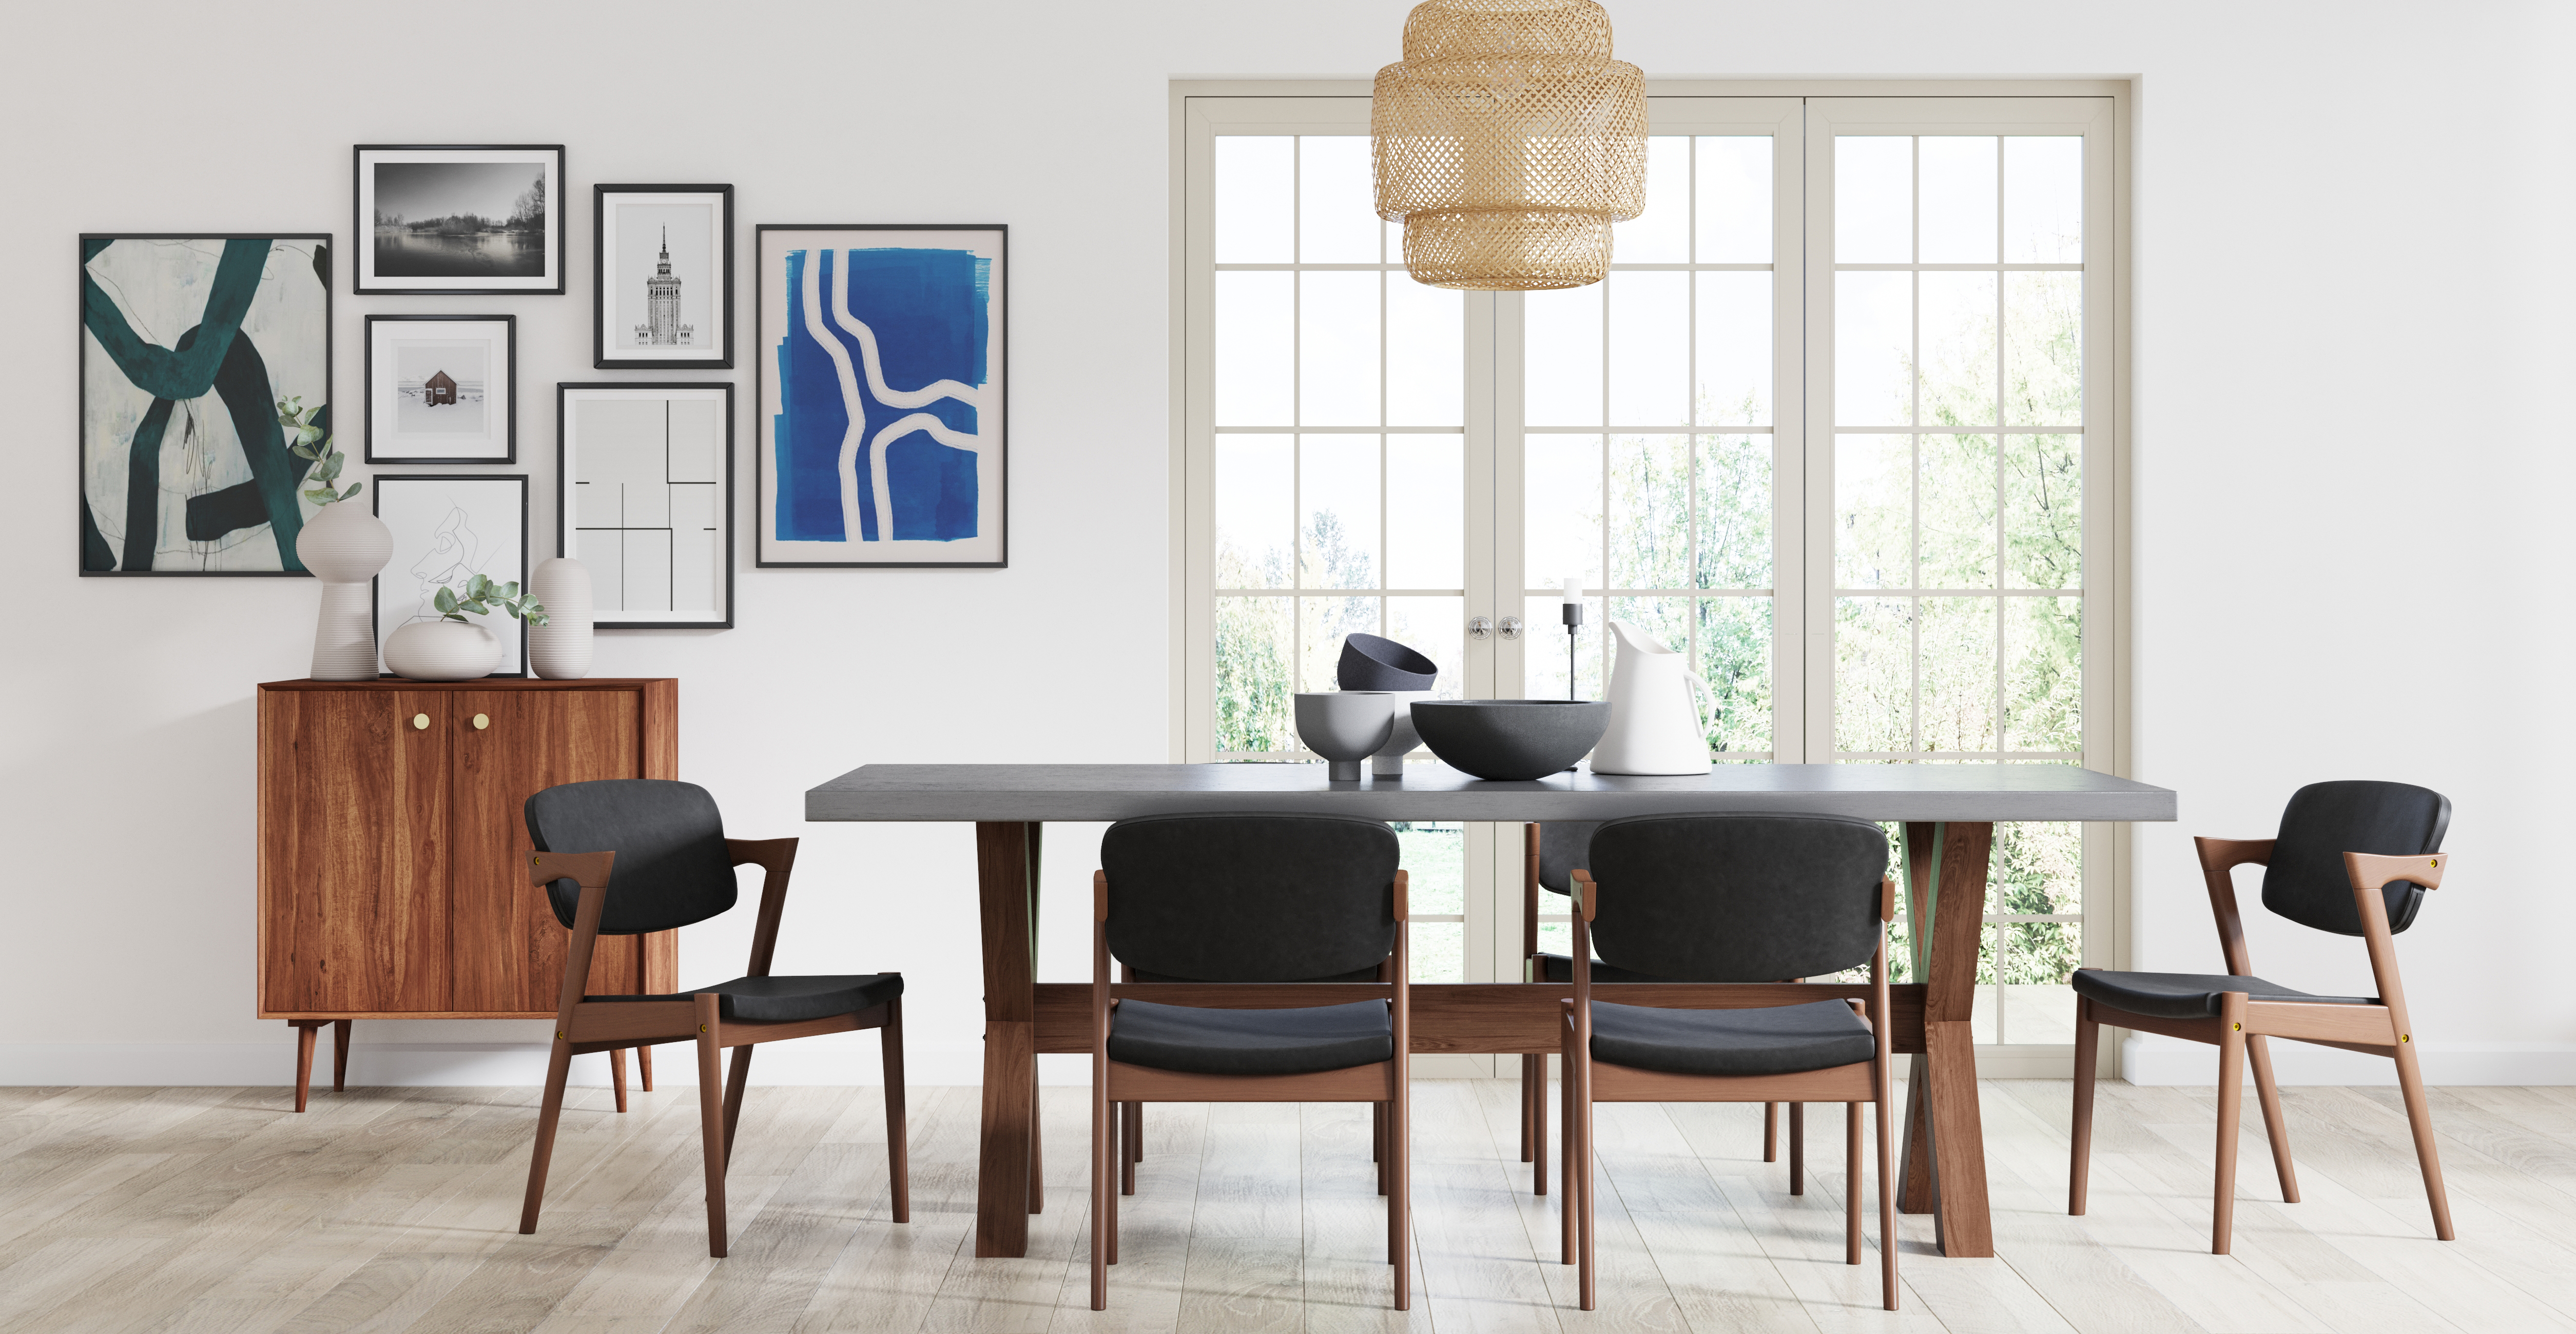 Brosa Ingrid Set of 2 Dining Chairs styled in mid century modern dining room